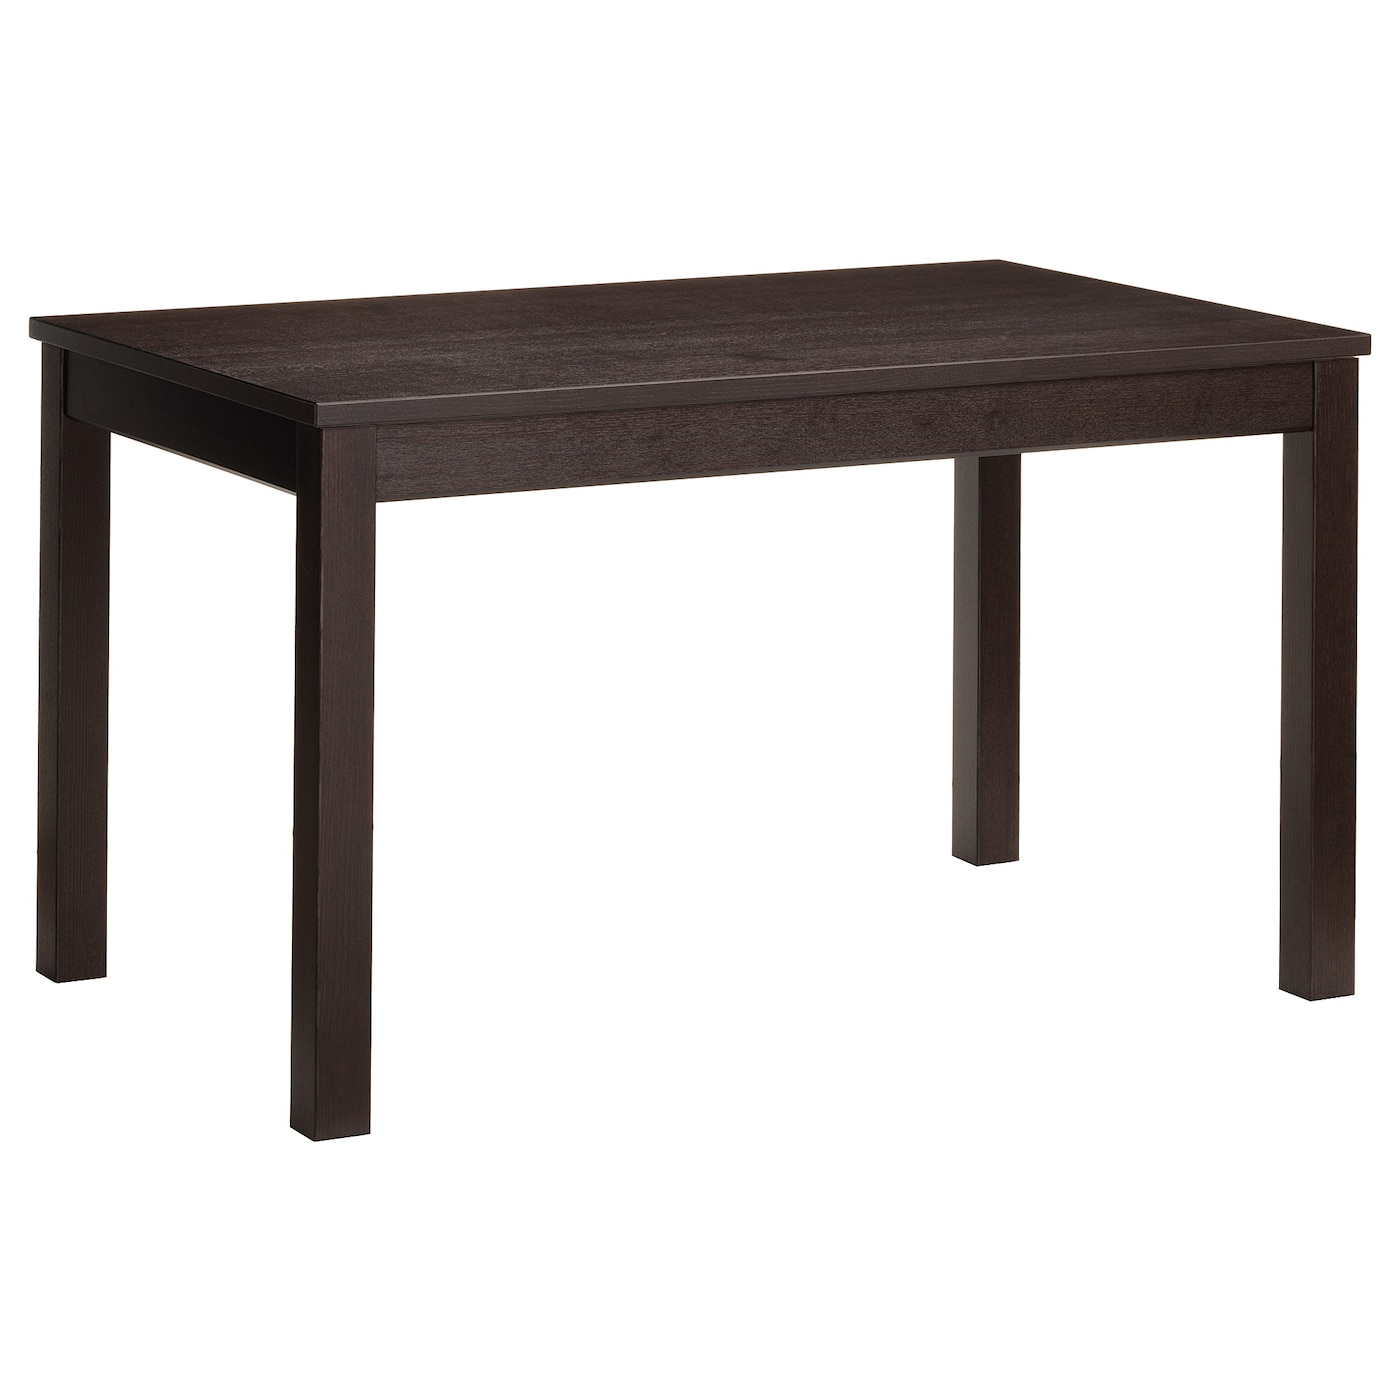 Small Dining Tables With Rustic Pine Ash Brown Finish Intended For Well Known Extendable Table Laneberg Brown (View 6 of 25)